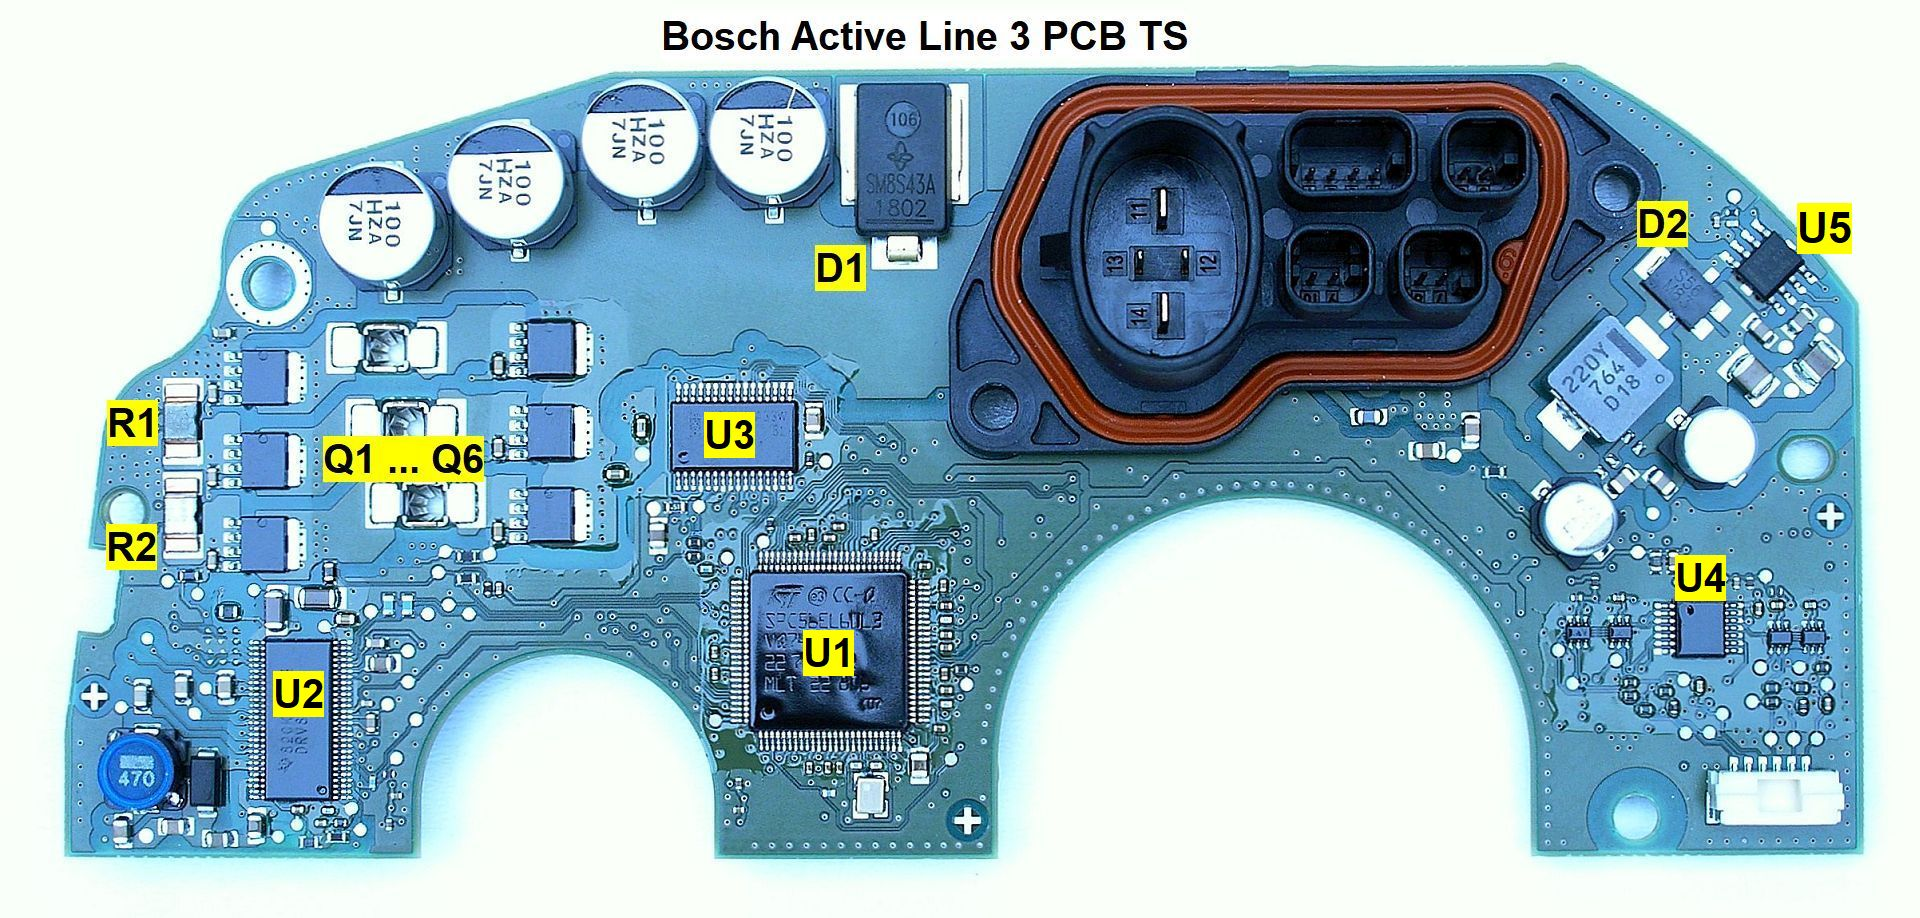 Bosch Active Line 3 Pcb Printed Circuit Card Ts Dismantled